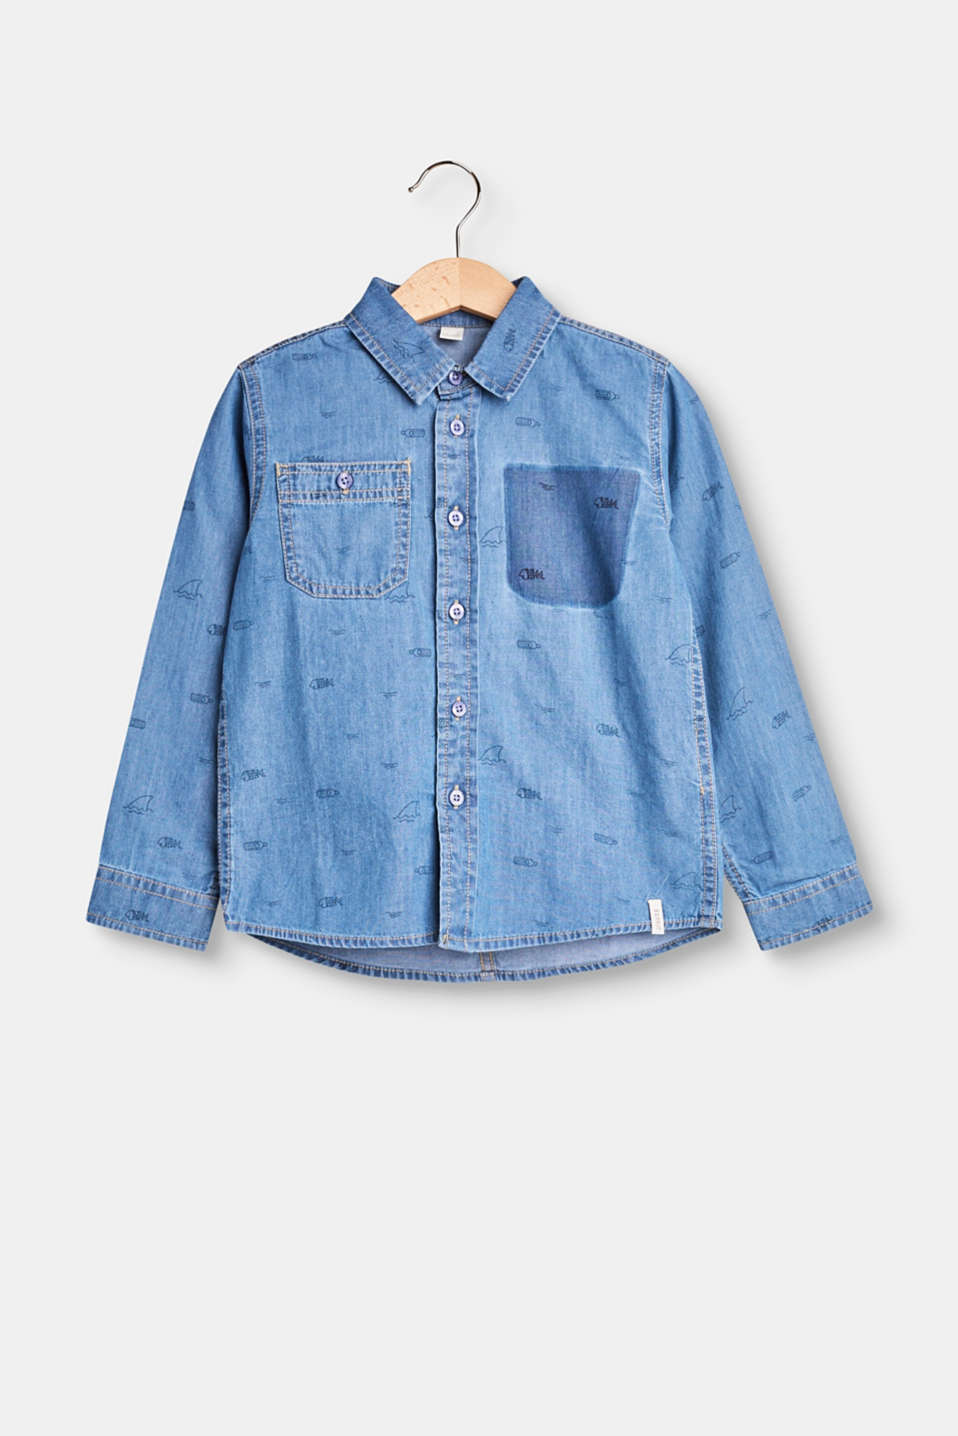 Esprit - Denim shirt with an all-over print, cotton